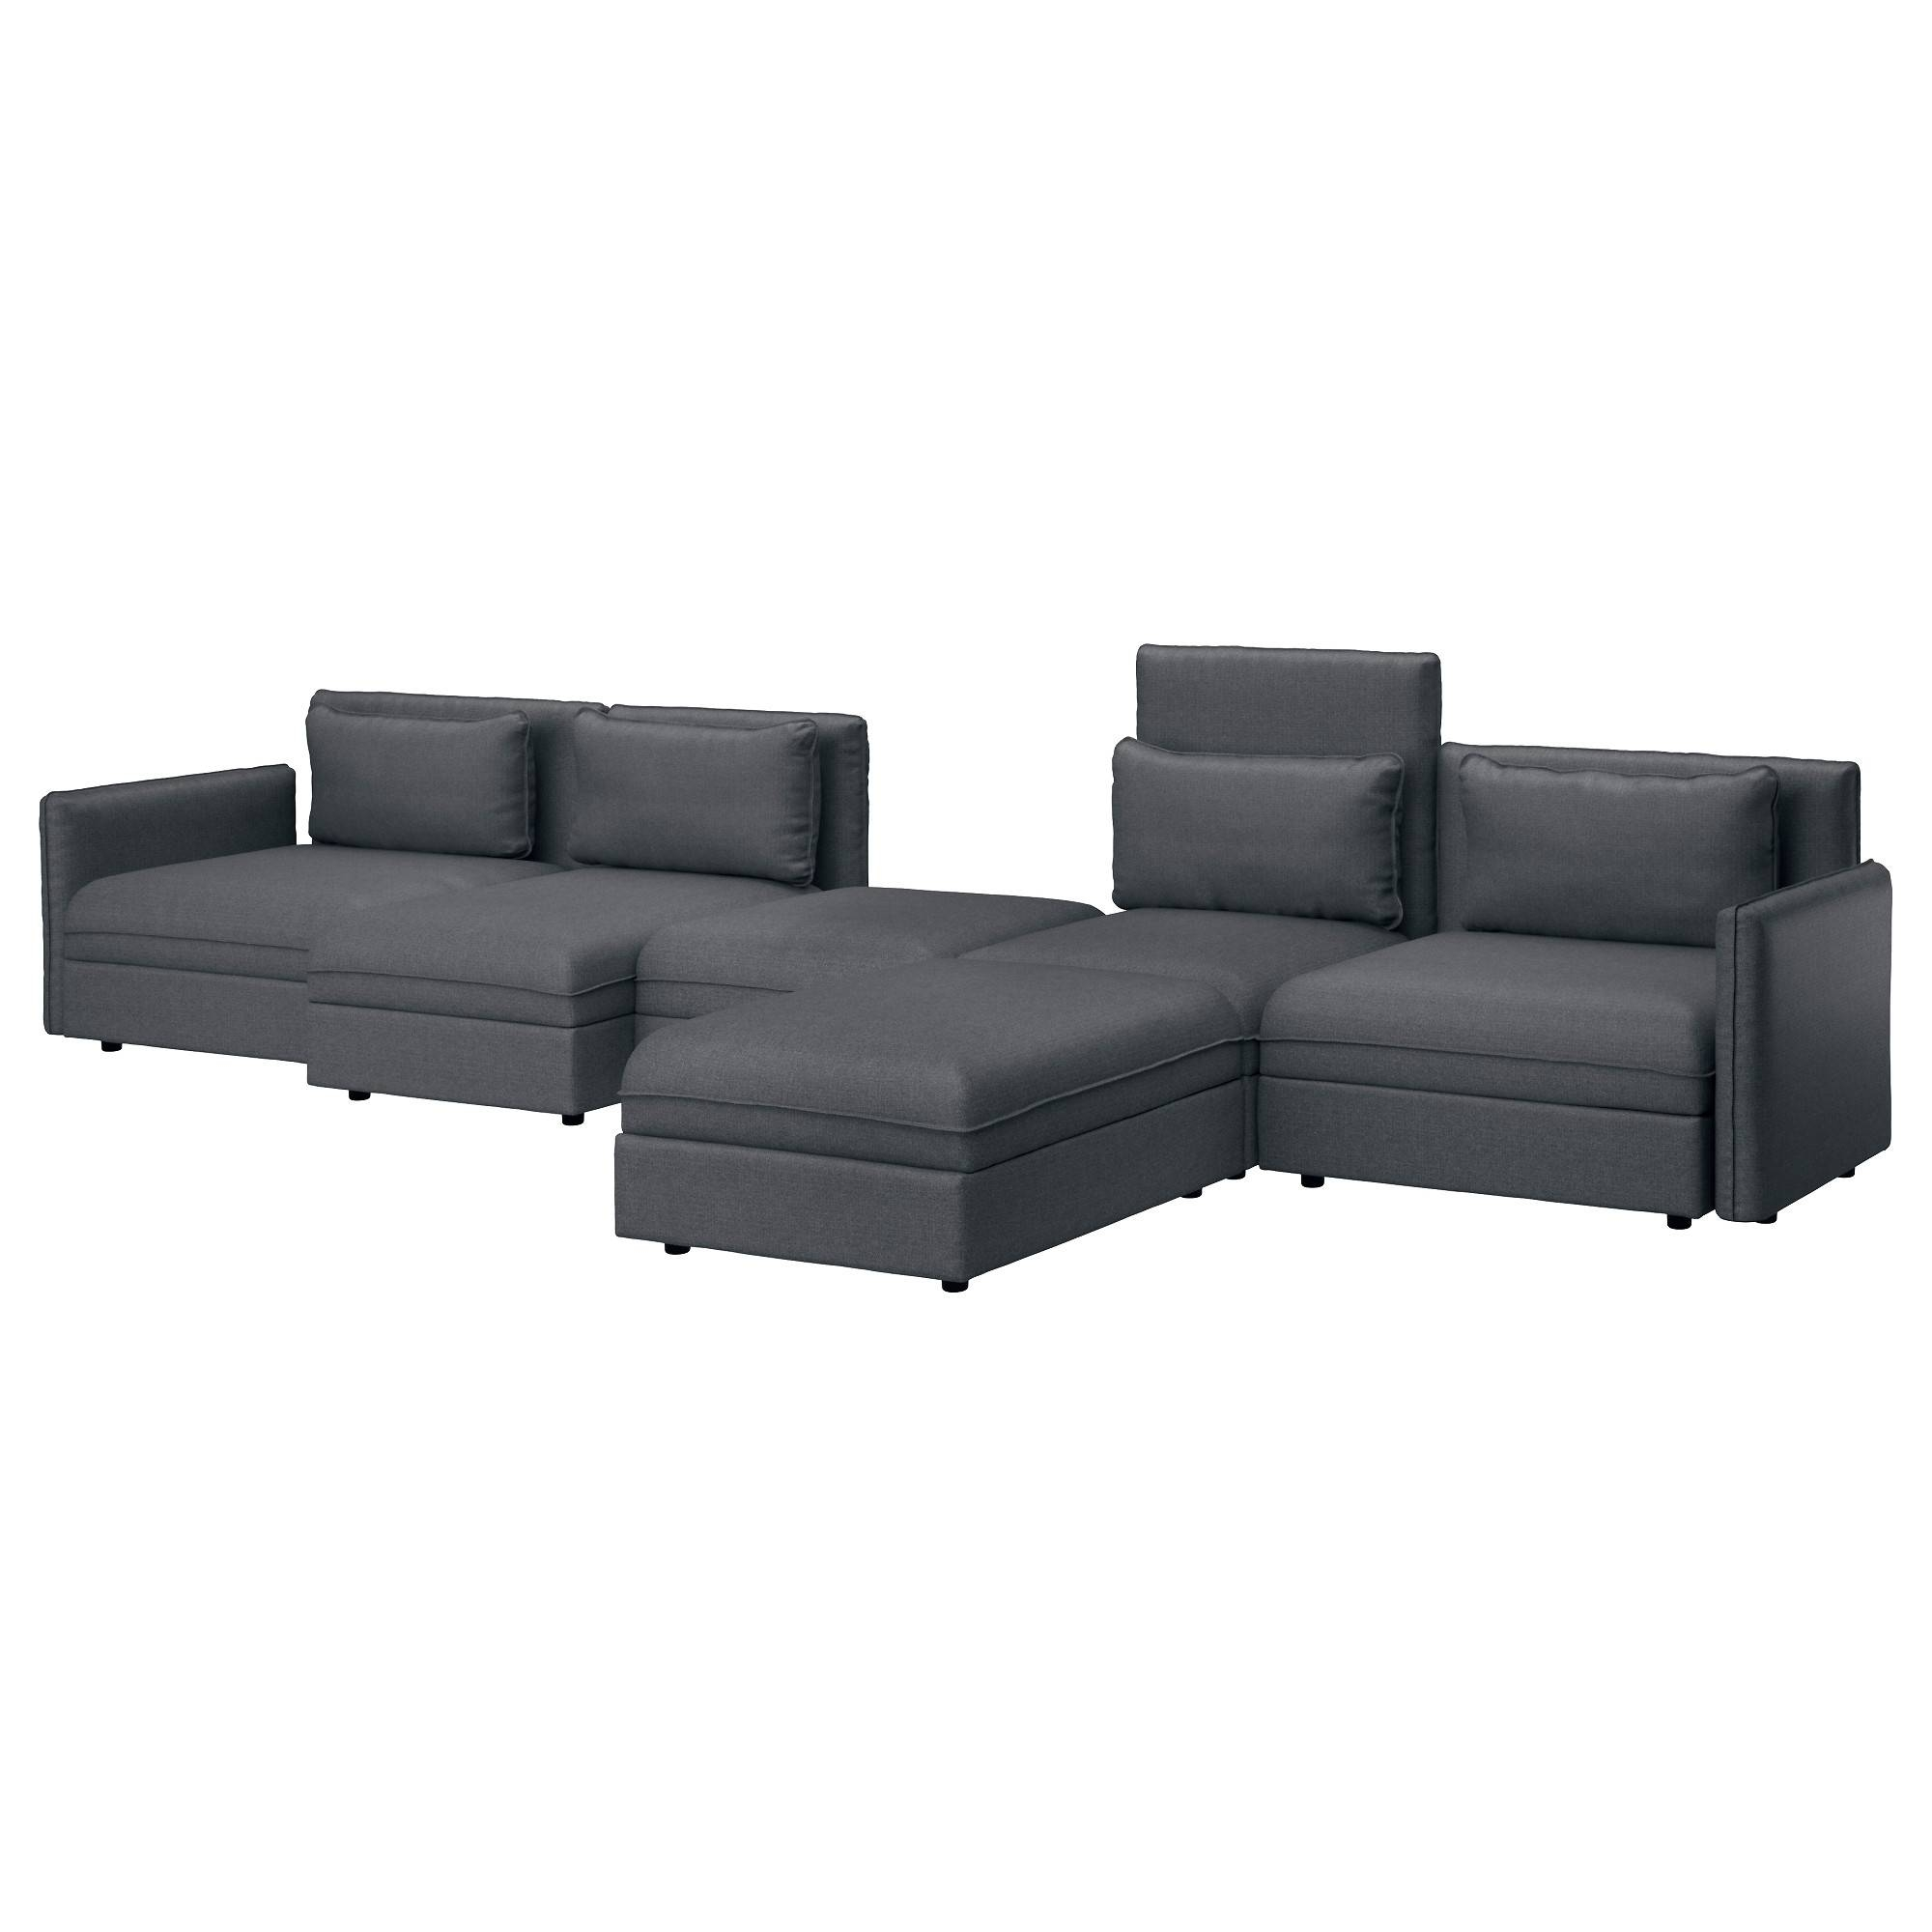 Sectional Sofas & Couches - Ikea inside Leather Modular Sectional Sofas (Image 25 of 30)